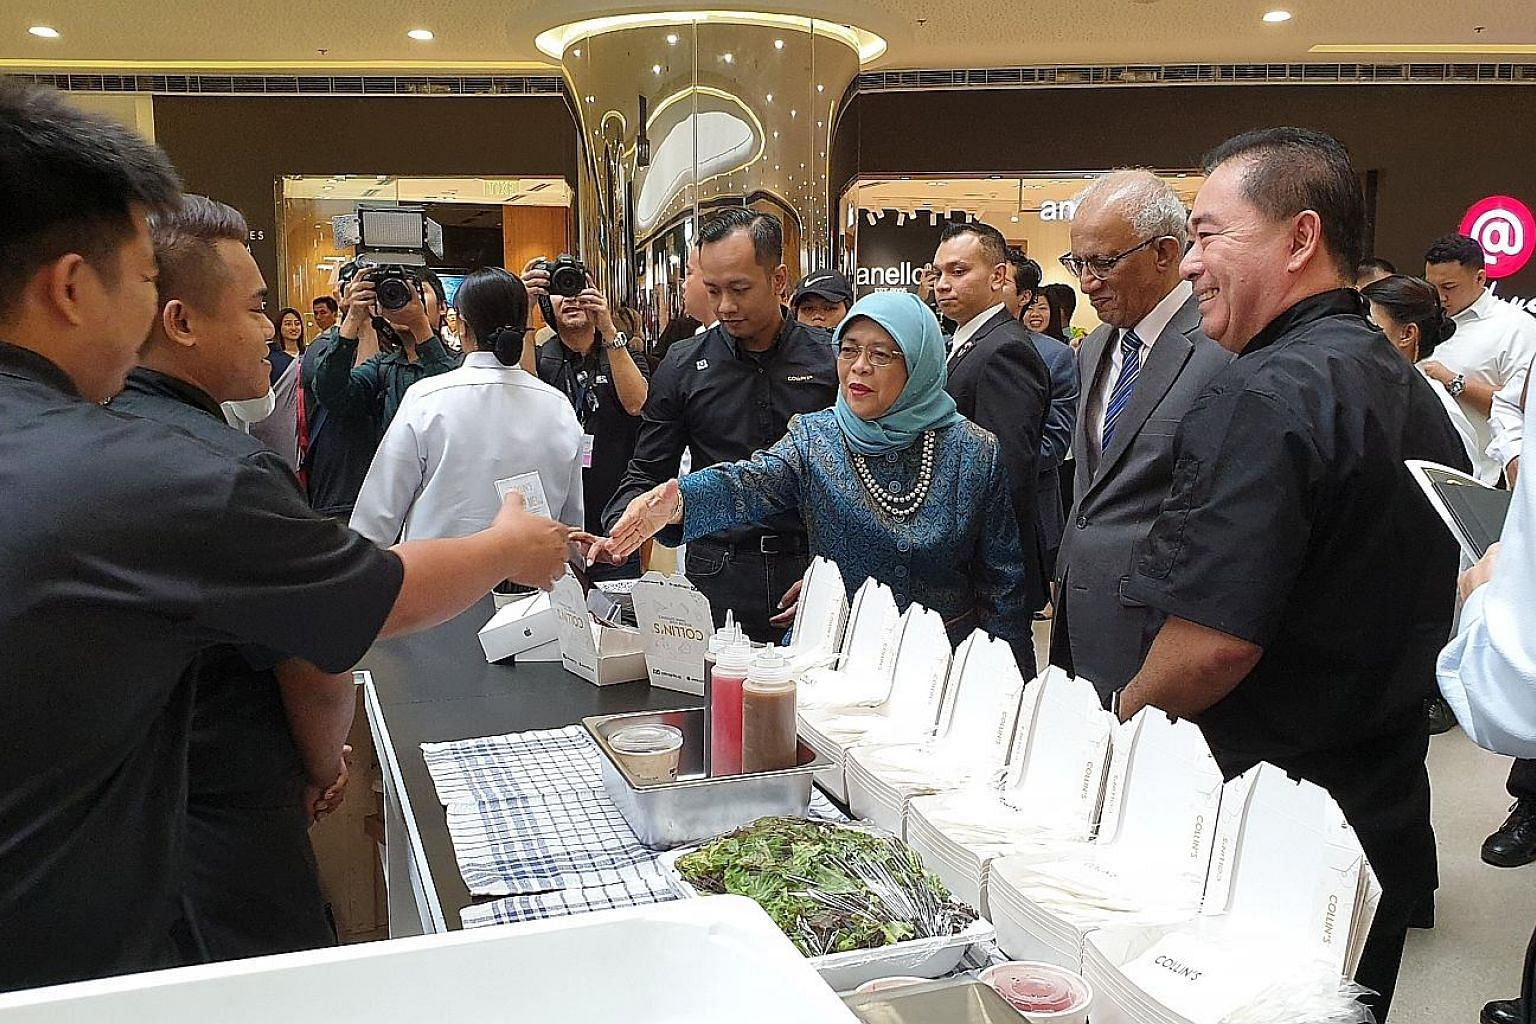 President Halimah Yacob interacting with staff from food and beverage brand Collin's at Singaporium, a consumer and lifestyle pop-up in Manila. She was accompanied by her husband, Mr Mohamed Abdullah Alhabshee (second from right). ST PHOTO: SUE-ANN T